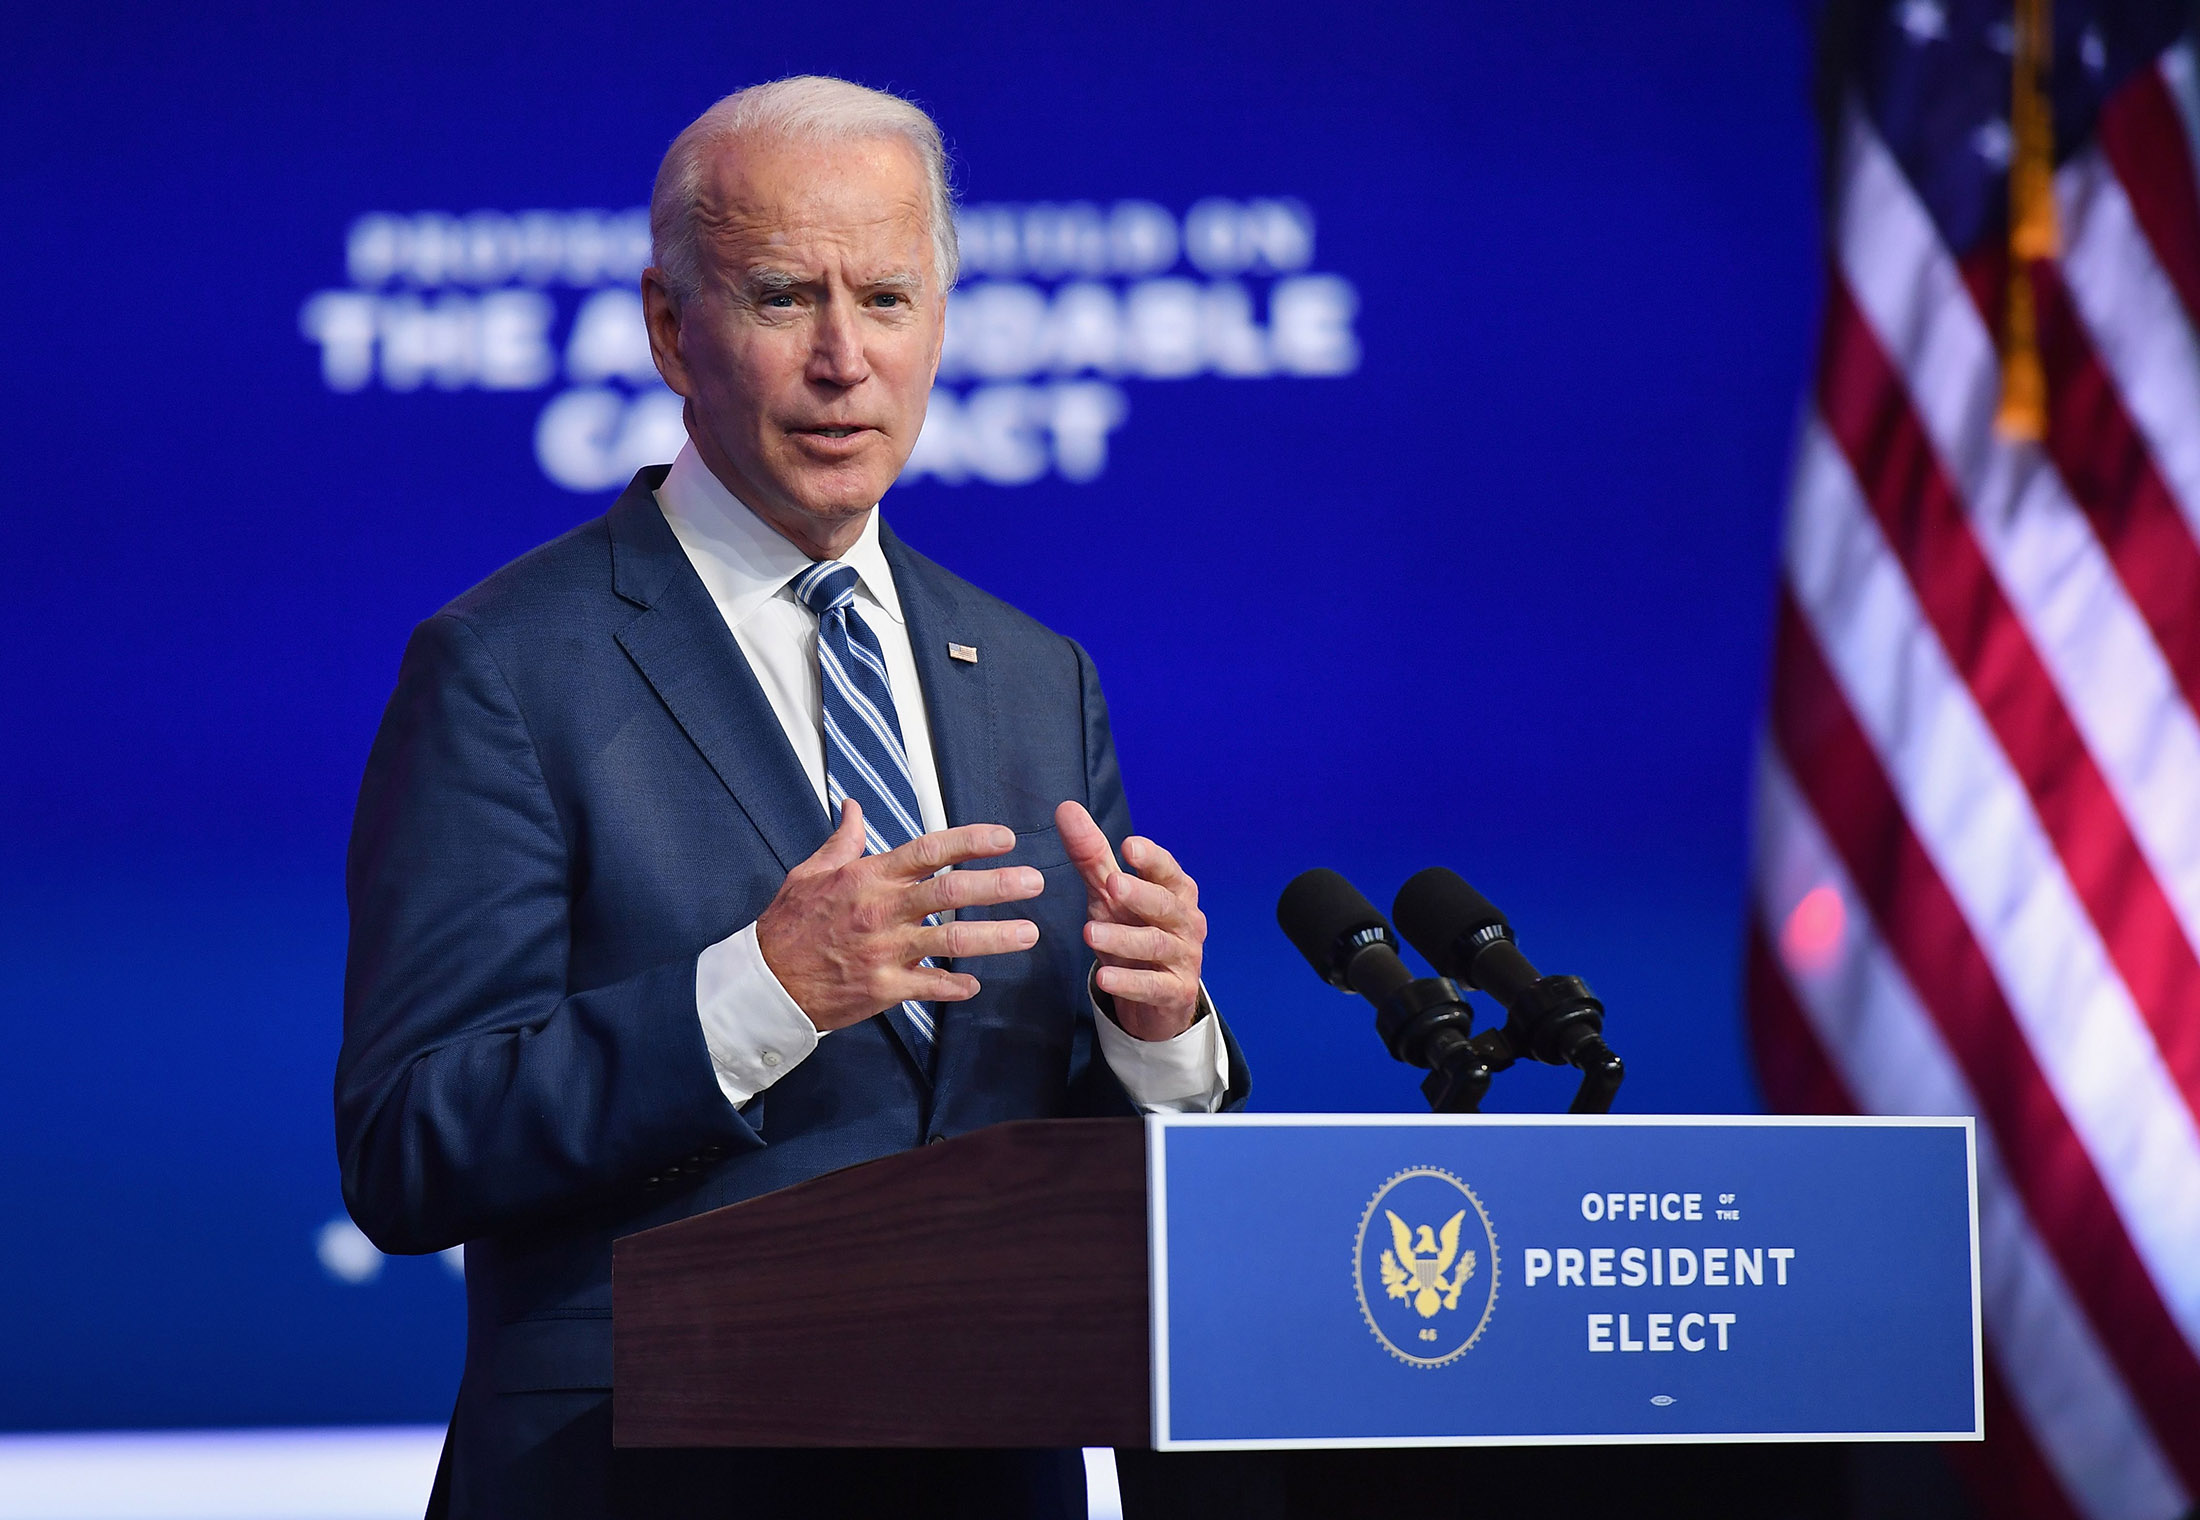 Biden on Trump administration distributing vaccine: 'There is no detailed plan'